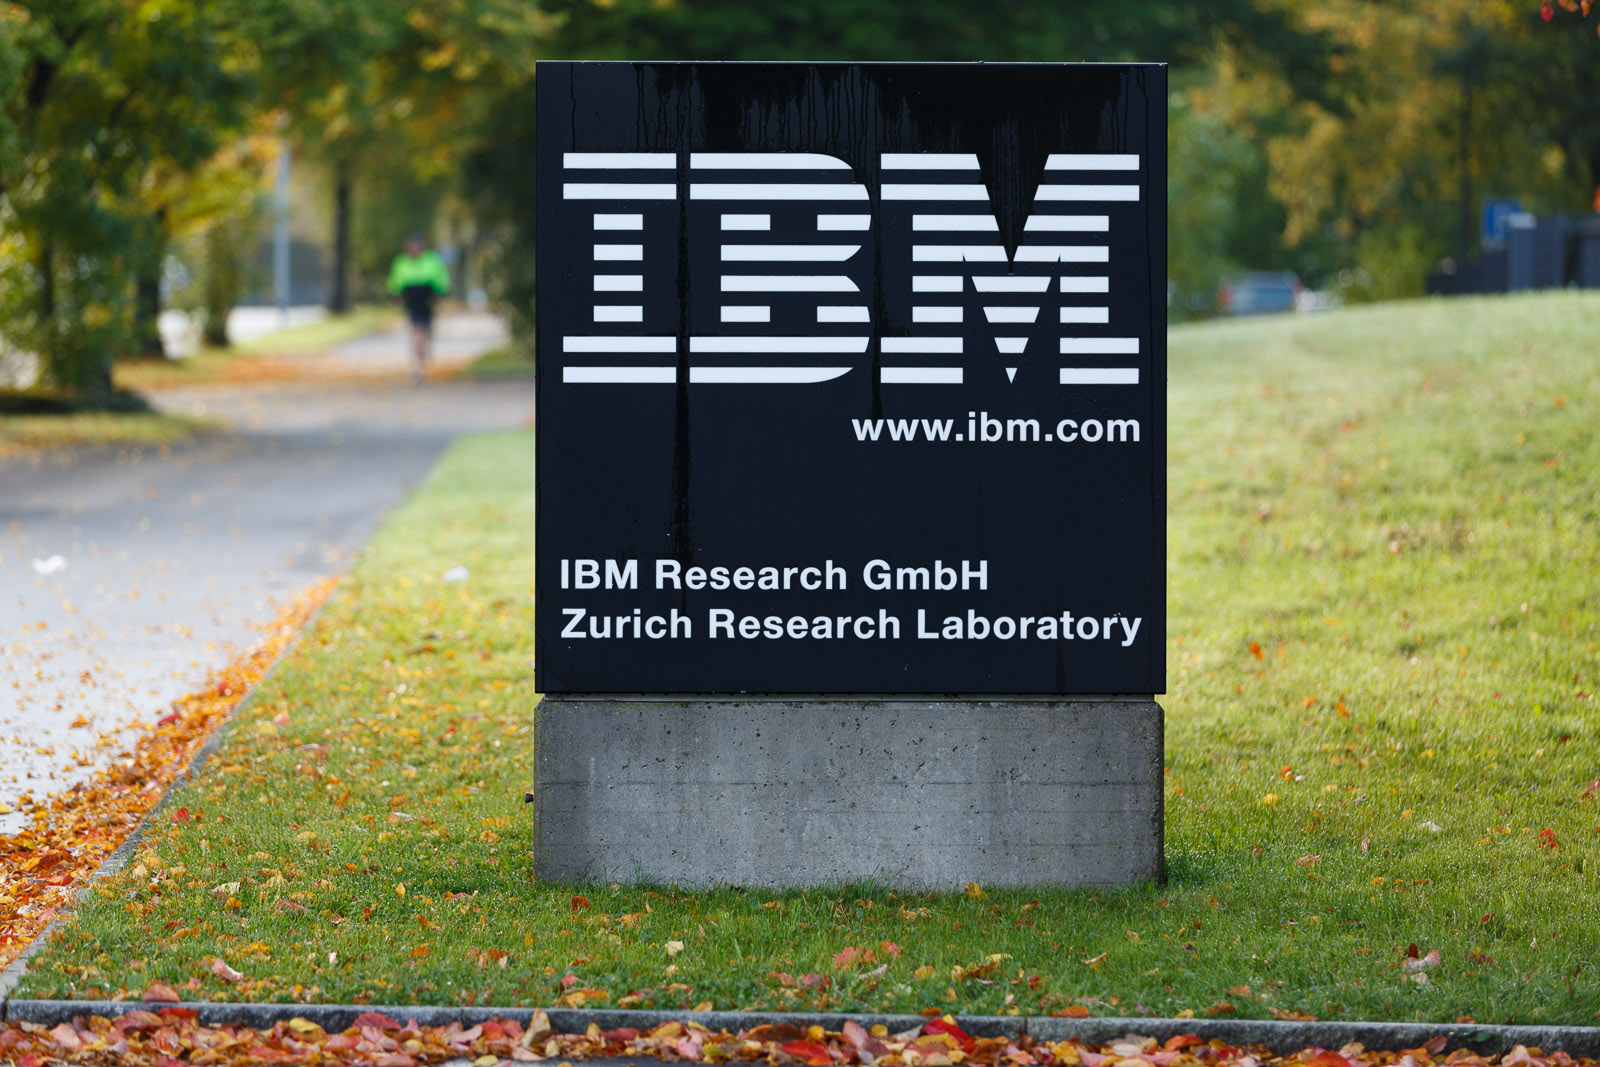 IBM Research investigates supercomputing, nanotechnology, medicine, and more at its Zurich labs.